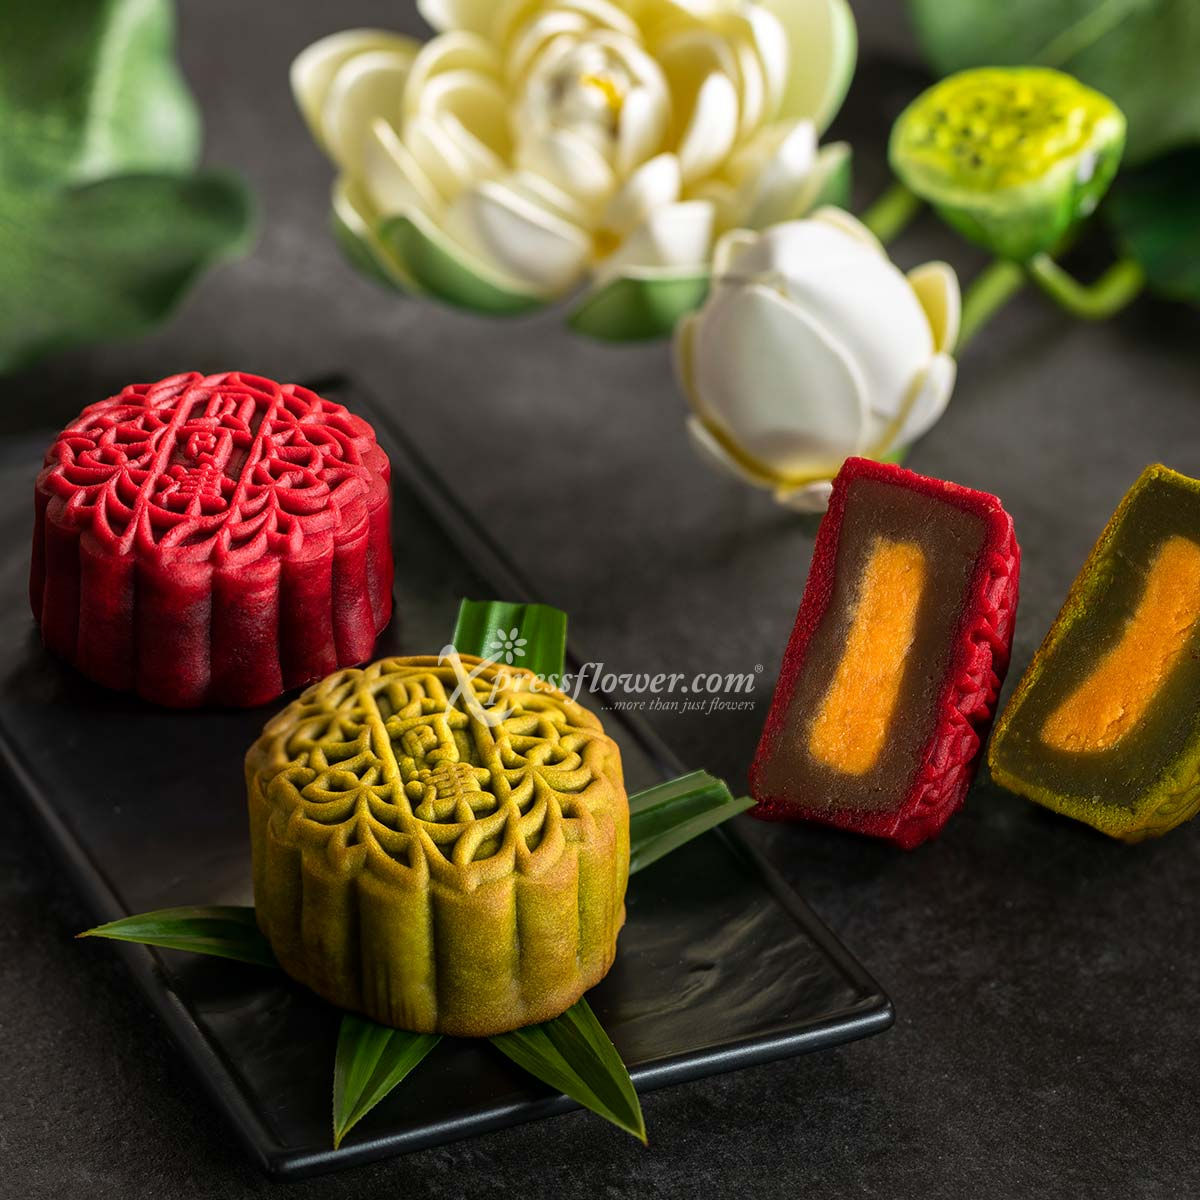 MAF1983 Happy Together flower and mooncake